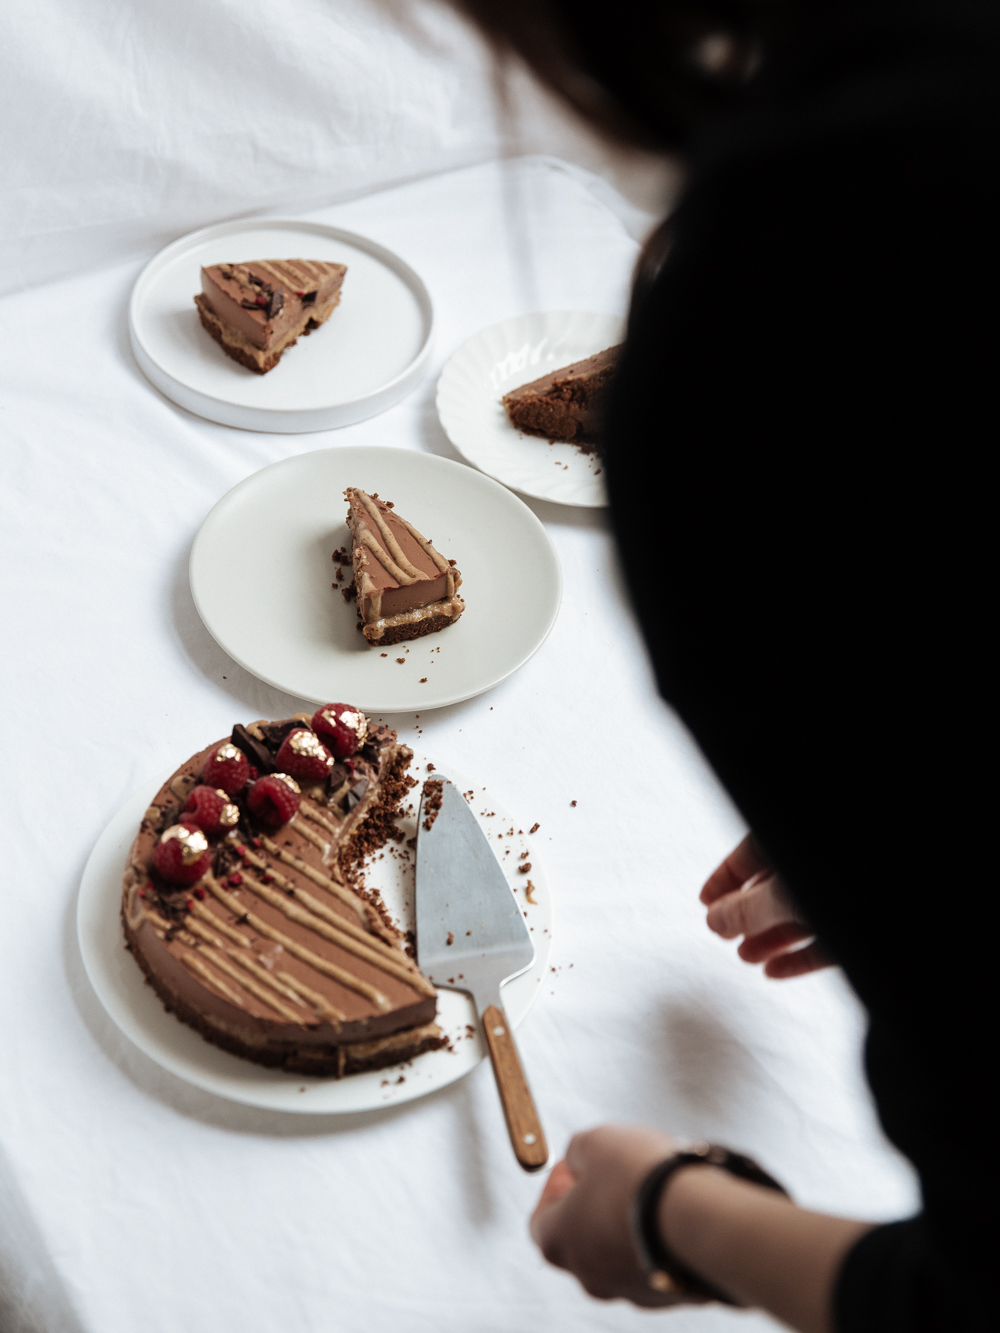 Baking with Monalogue - Raw Salted Caramel Chocolate Cheesecake